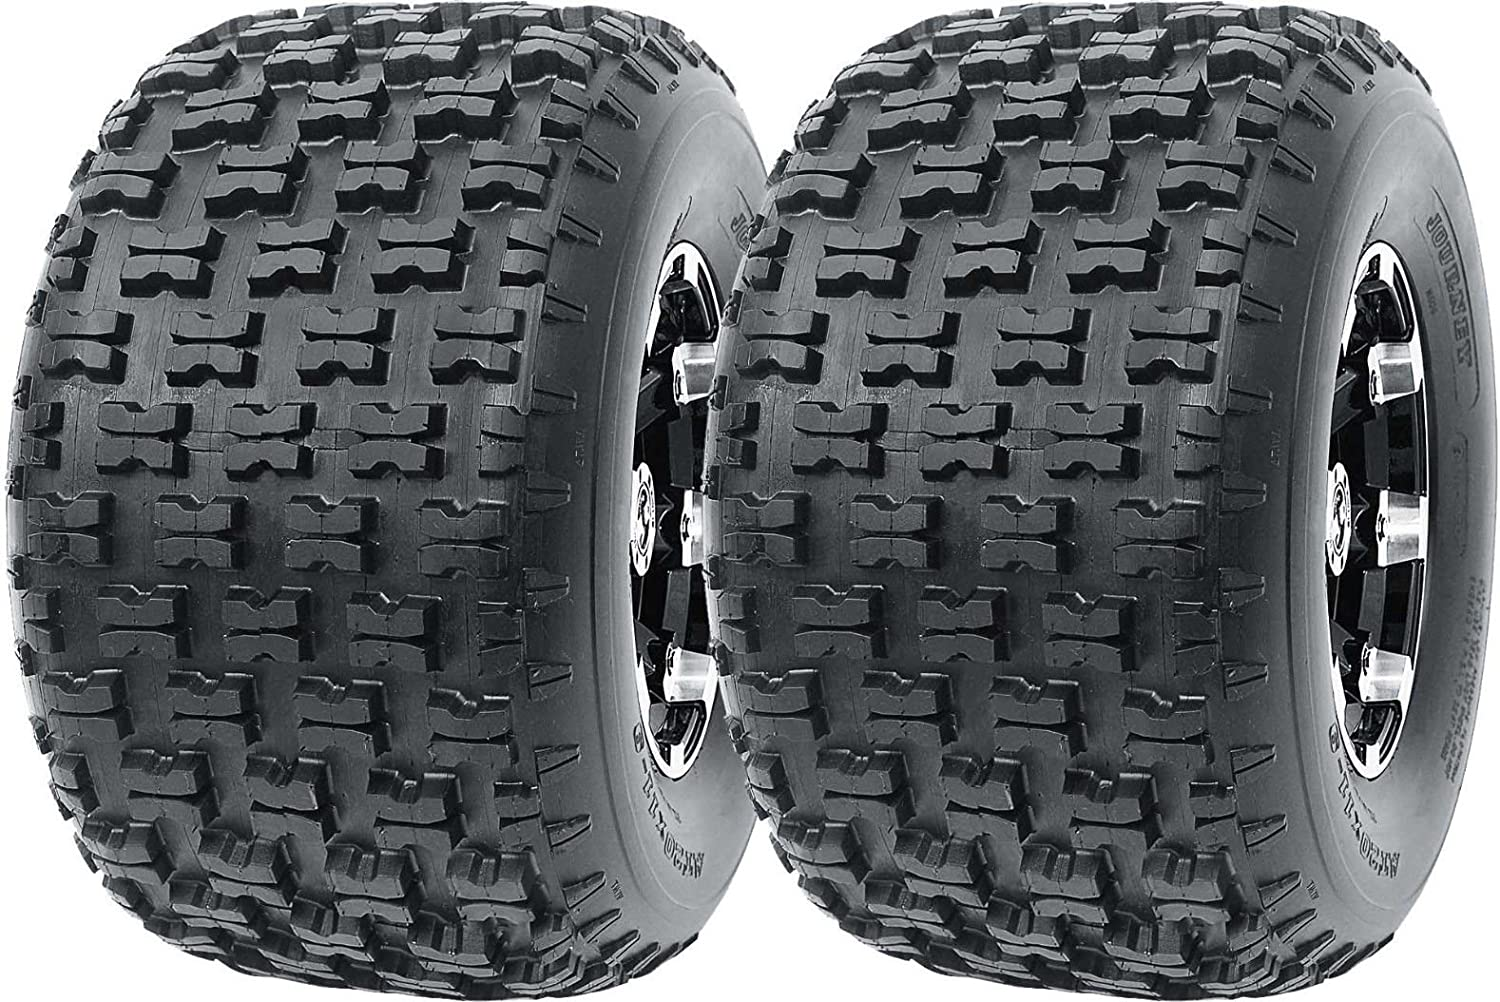 Pair of 2 20X10-9 Sport ATV Tires 20x10x9 20-10-9